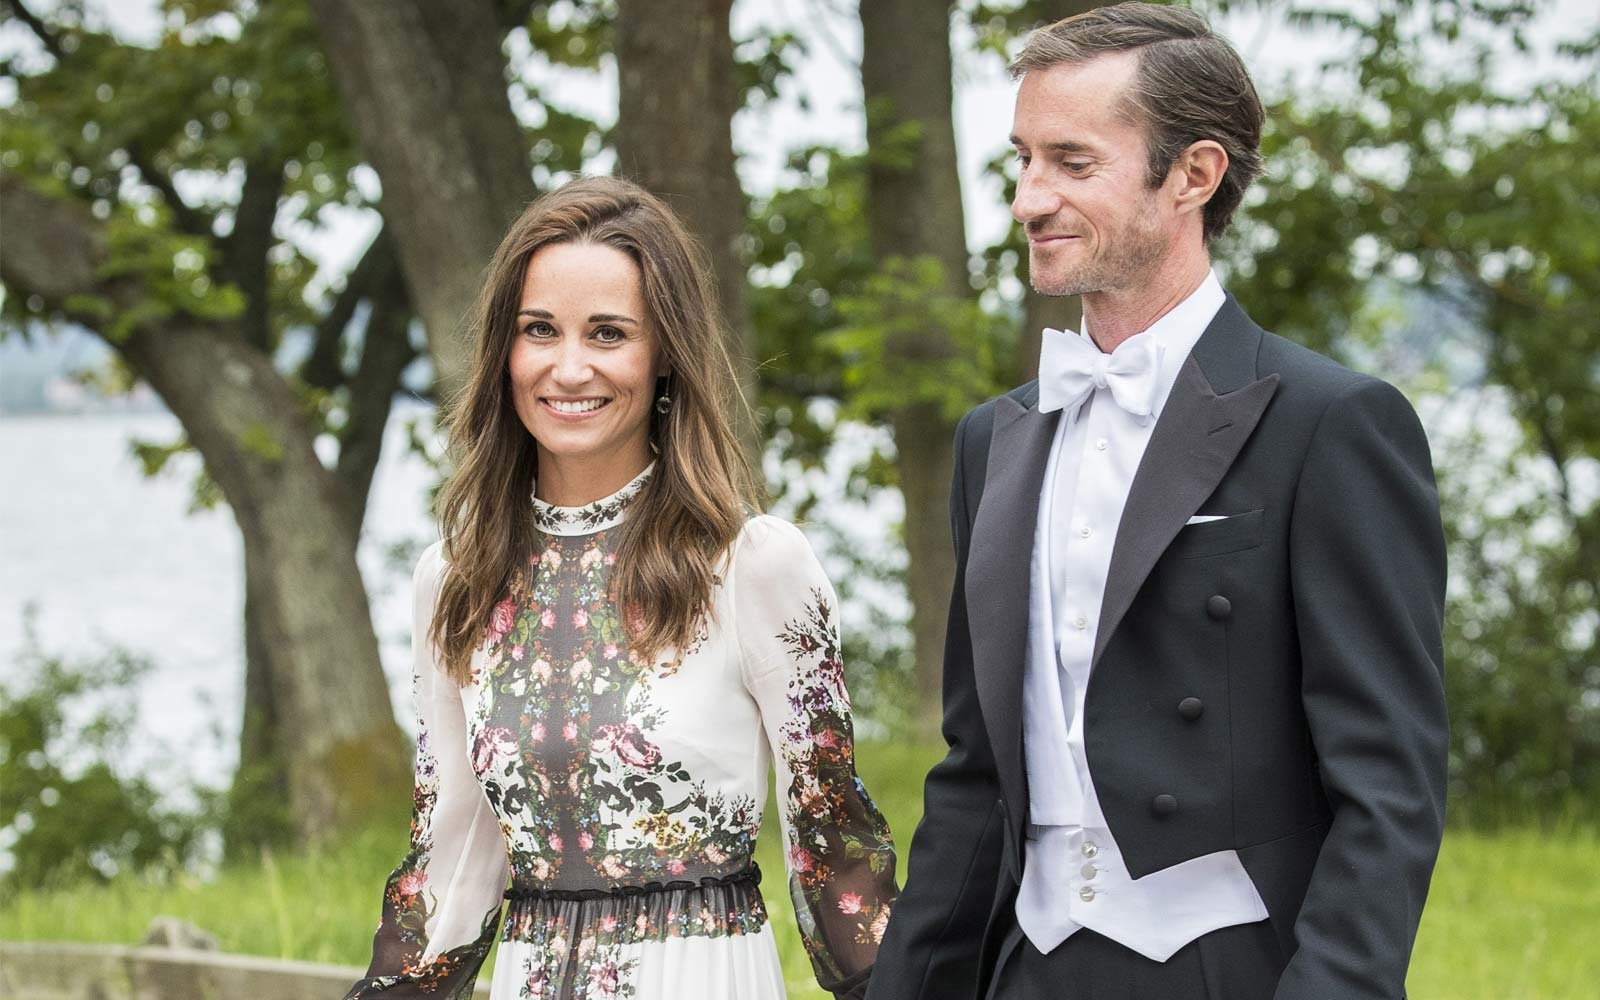 Pippa Middleton at wedding in Sweden